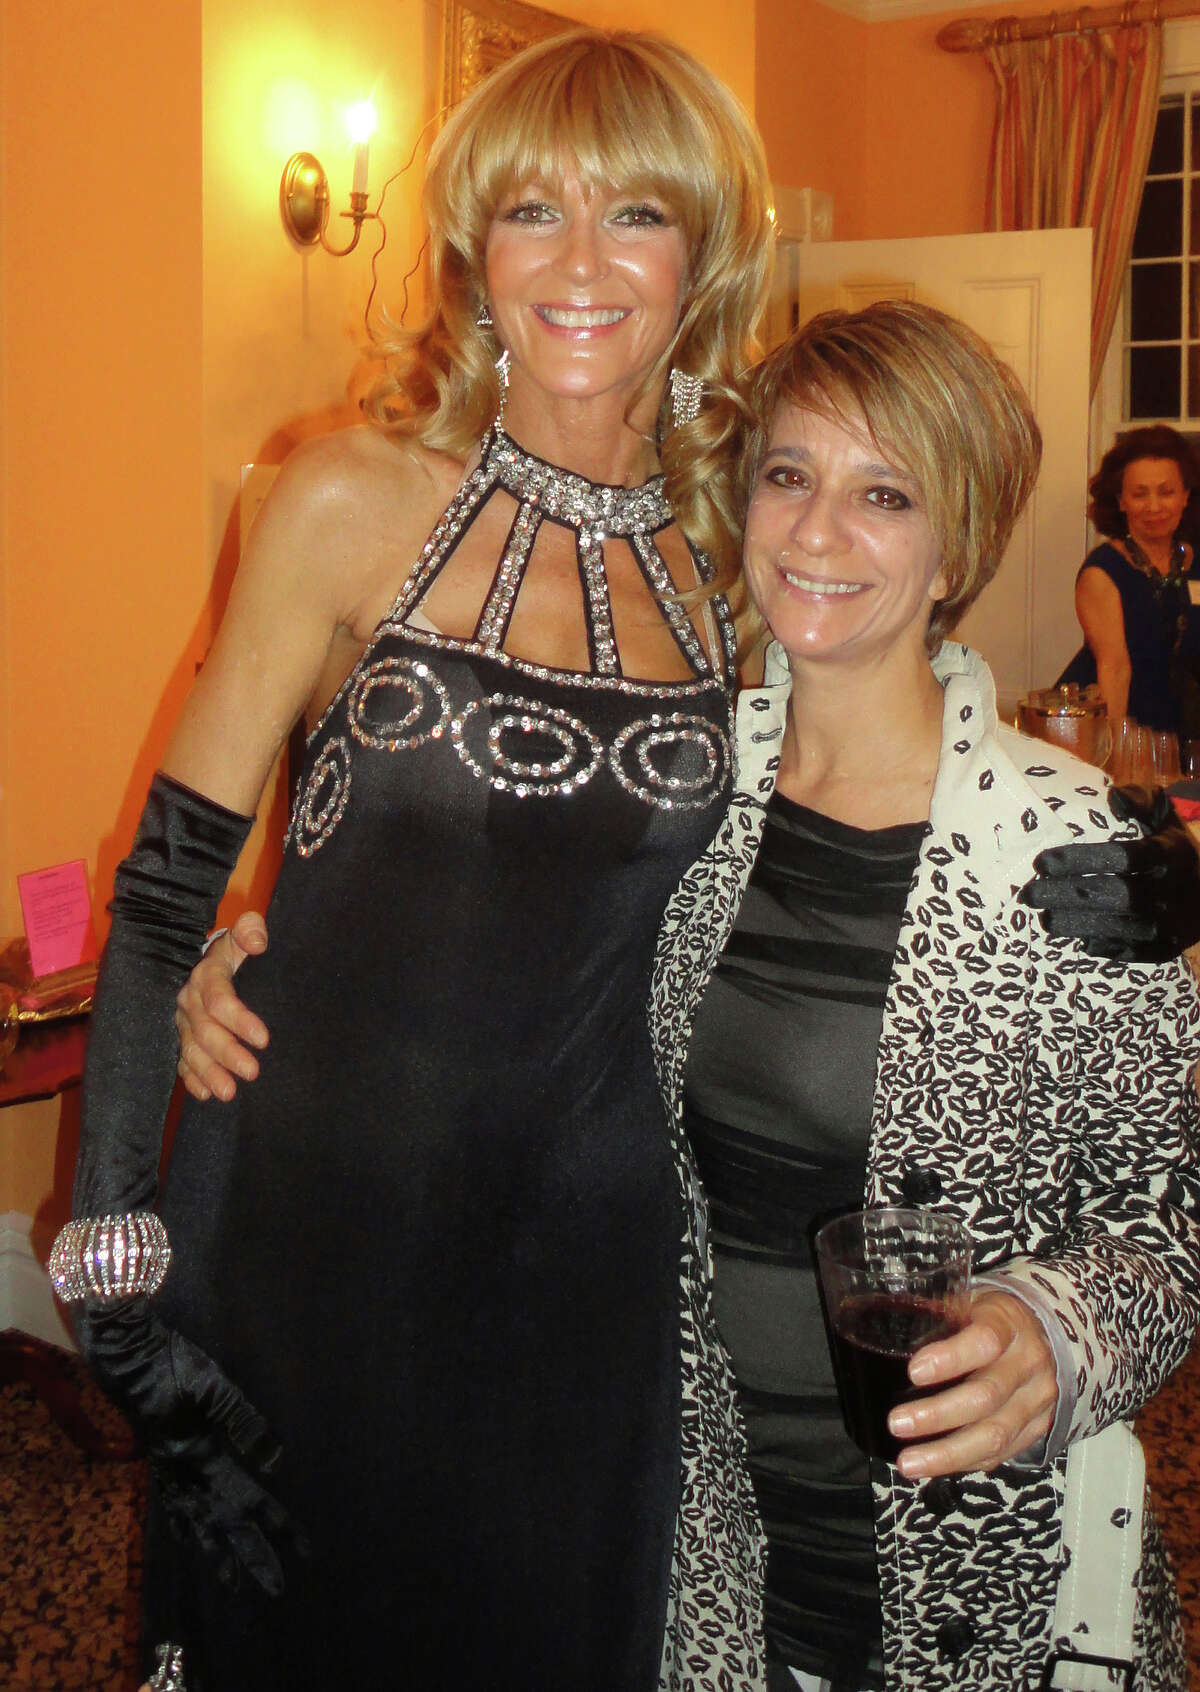 Westport artist Liz Beeby wears a black vintage gown with silver sequins trim Friday as she poses at the Westport Woman's Club with Paula Gallo of Westport, a recipient of a Westport Woman's Club scholarship. Proceeds of the fashion show will go to the club's scholarship program.